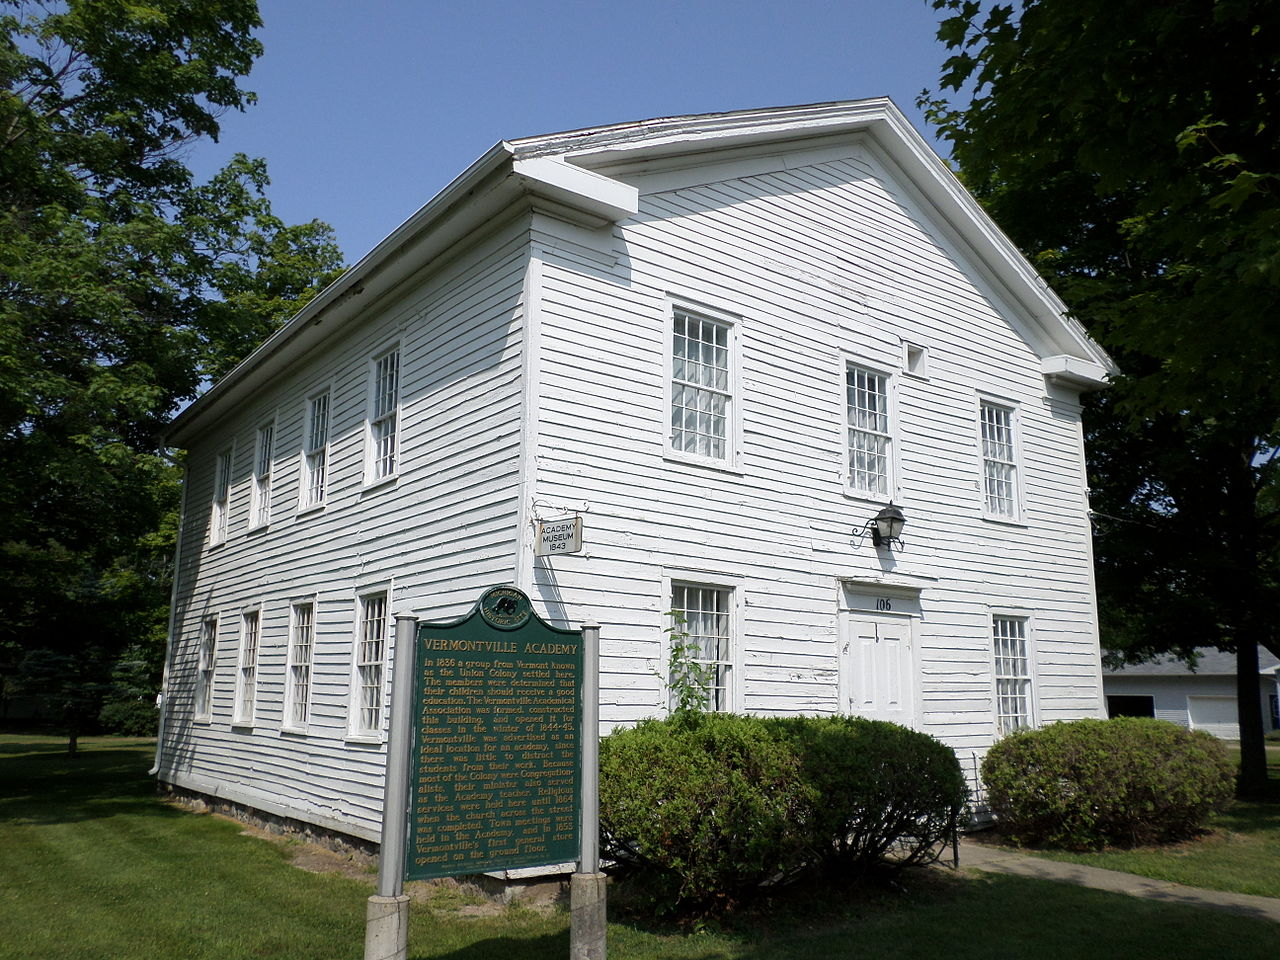 The Vermontville Historical Museum opened in 1966 and is housed in a historic building that once was an academy and church.